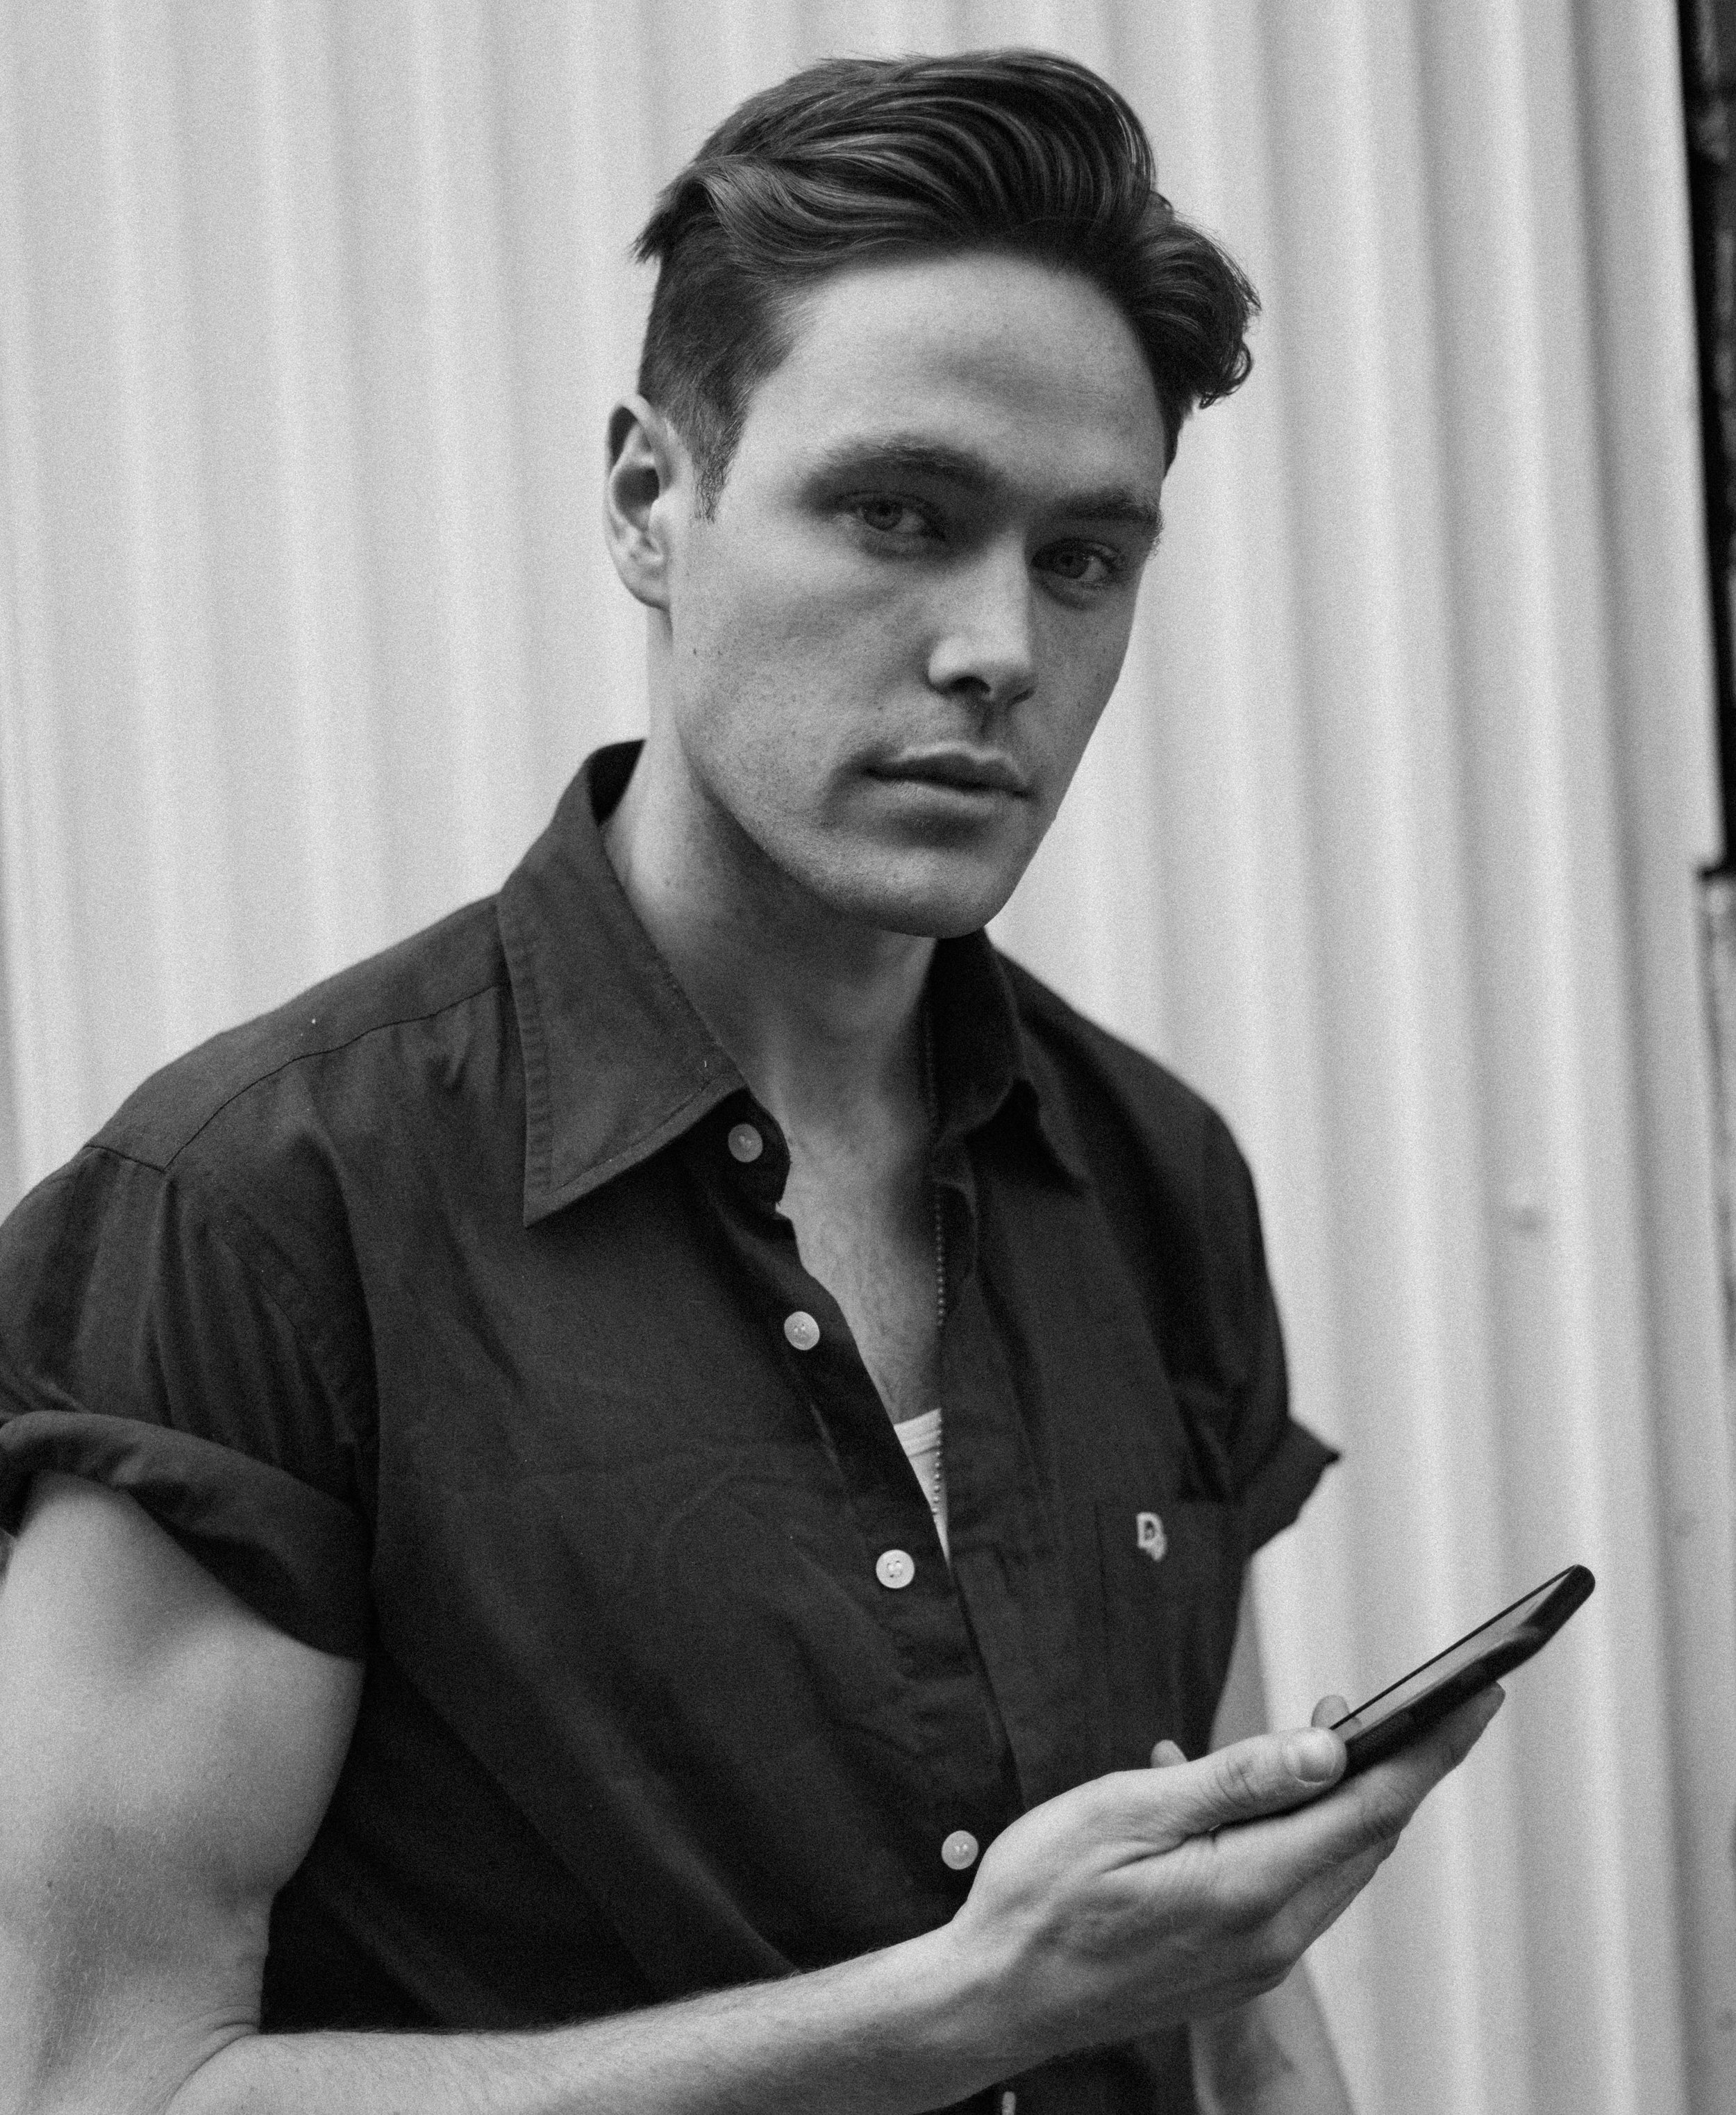 Drew Jessup    @d  r  ewjessup  for Bumble